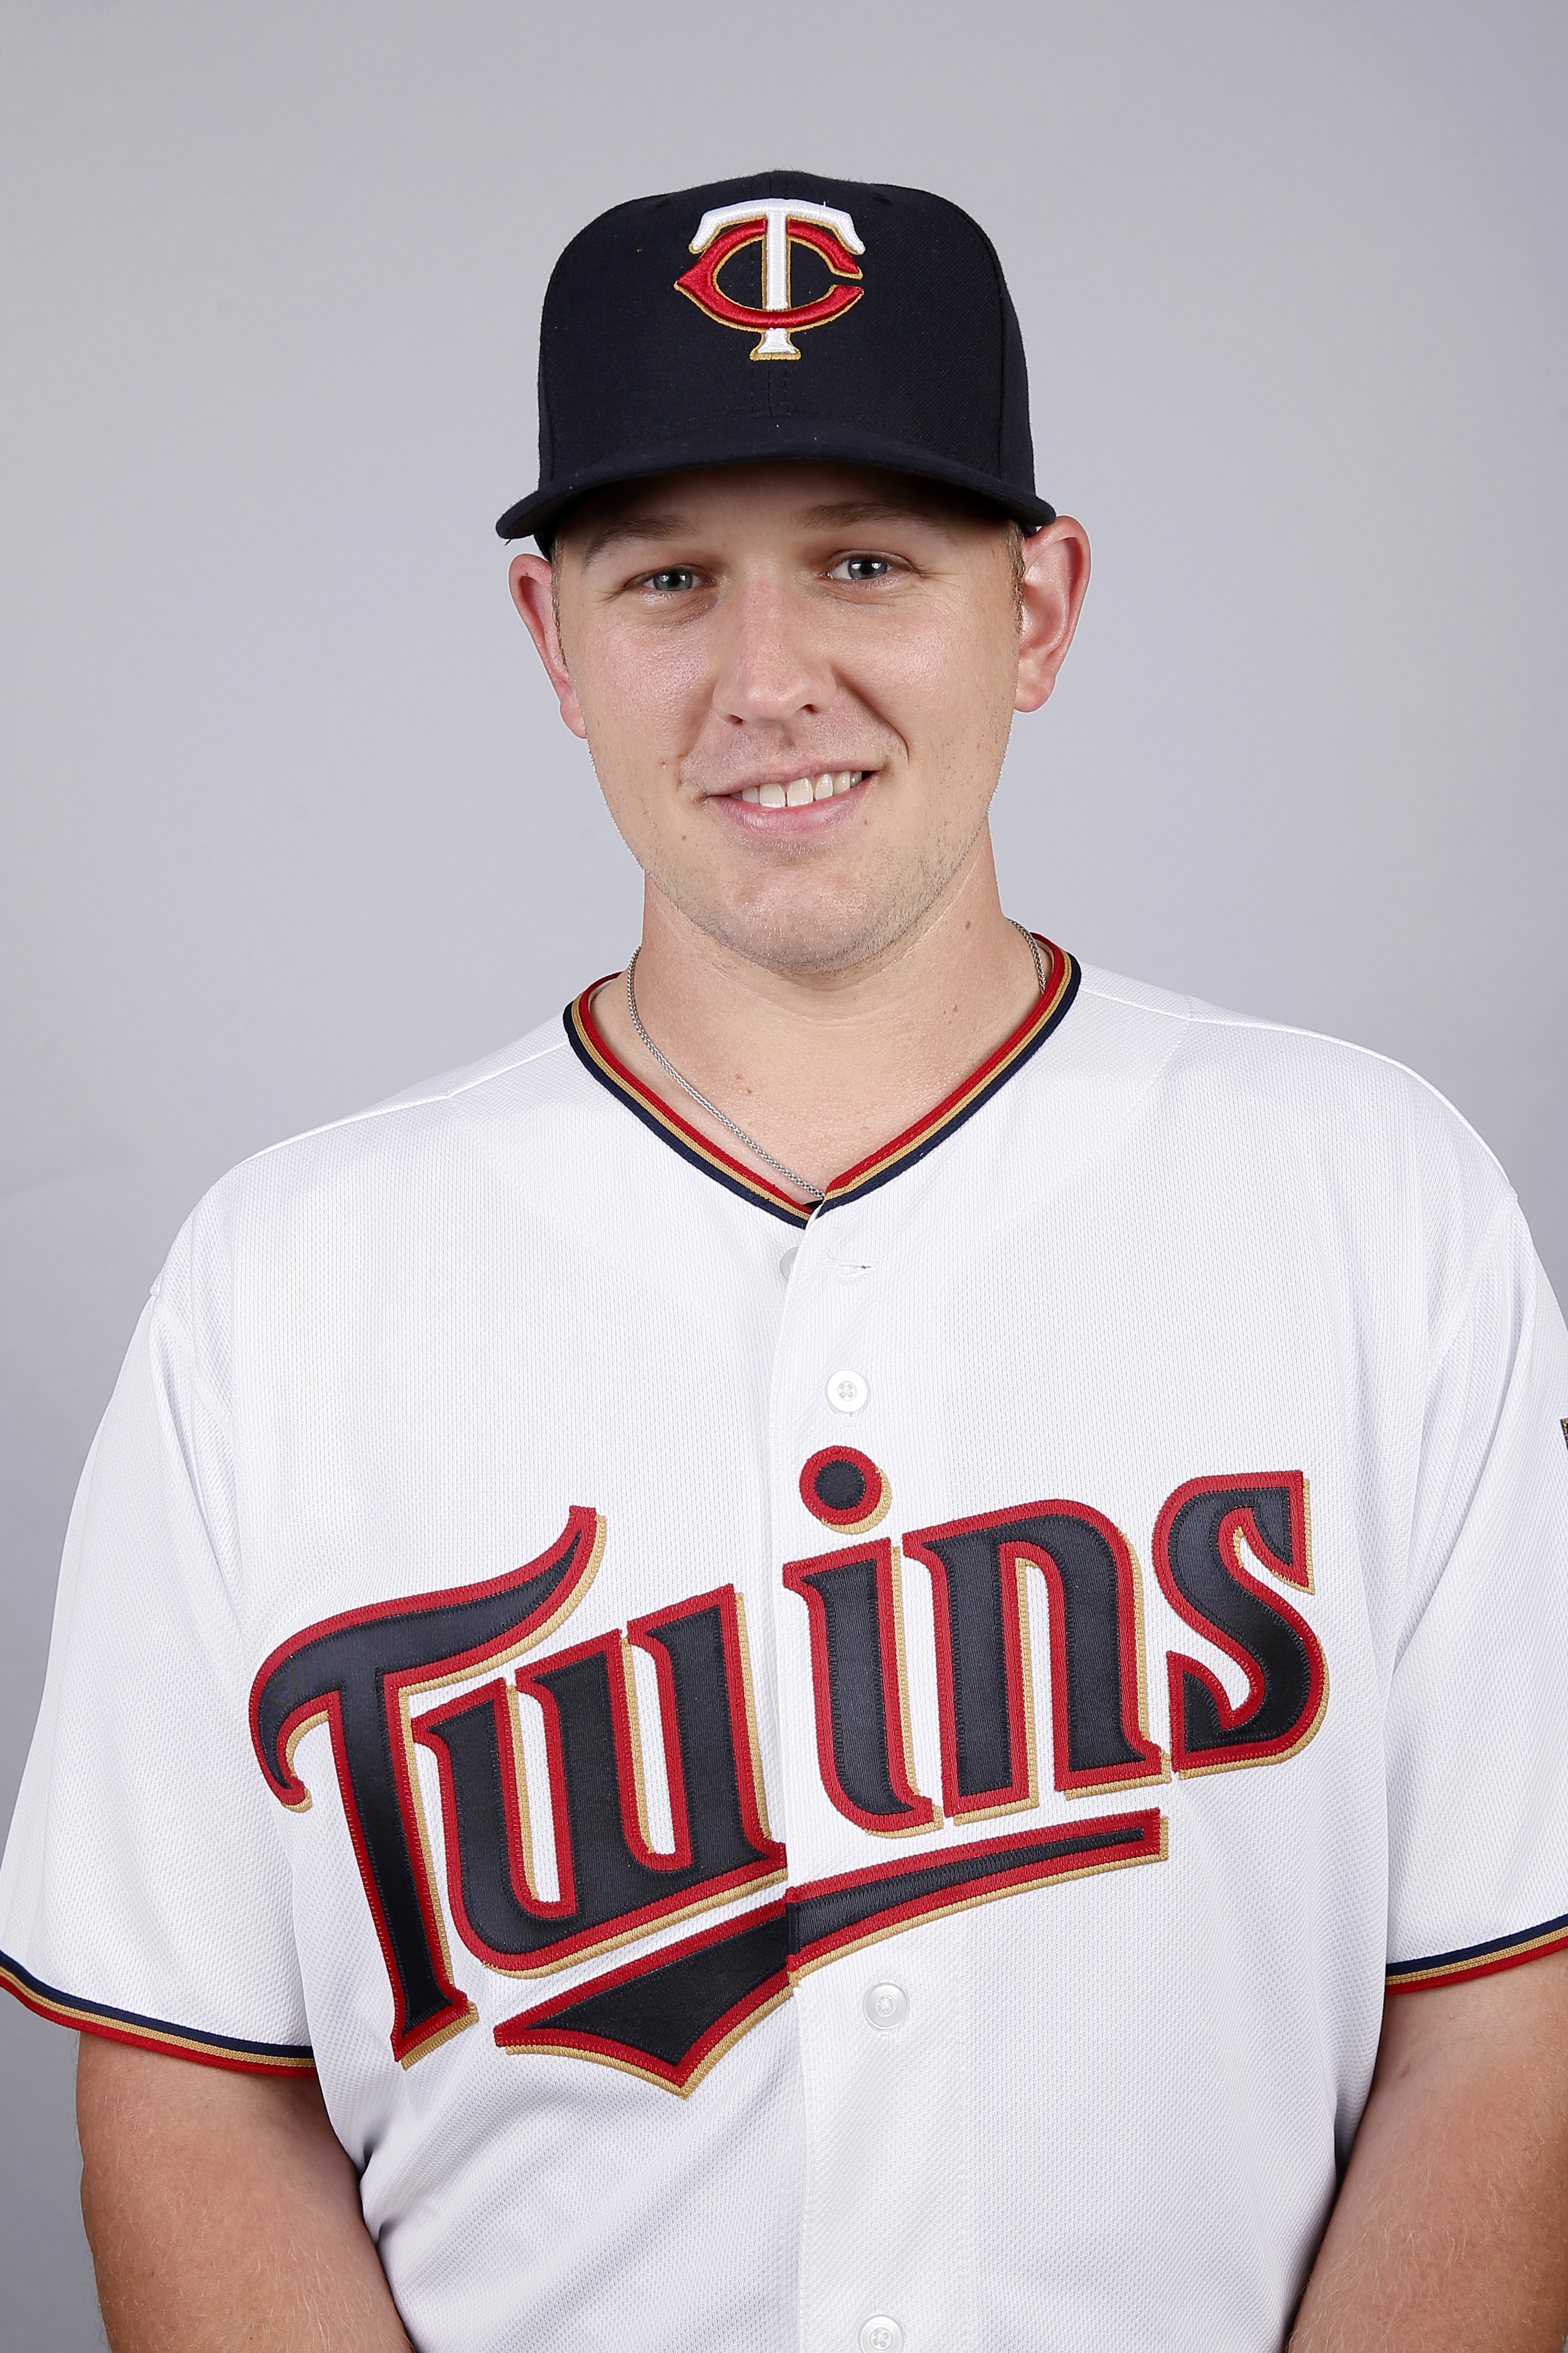 FILE - This is a 2015, file photo showing Tyler Duffey of the Minnesota Twins baseball team. Twins pitcher Tyler Duffey wasn't entirely prepared when he got called up to the major leagues for the first time. The right-hander, who opened the season at Doub